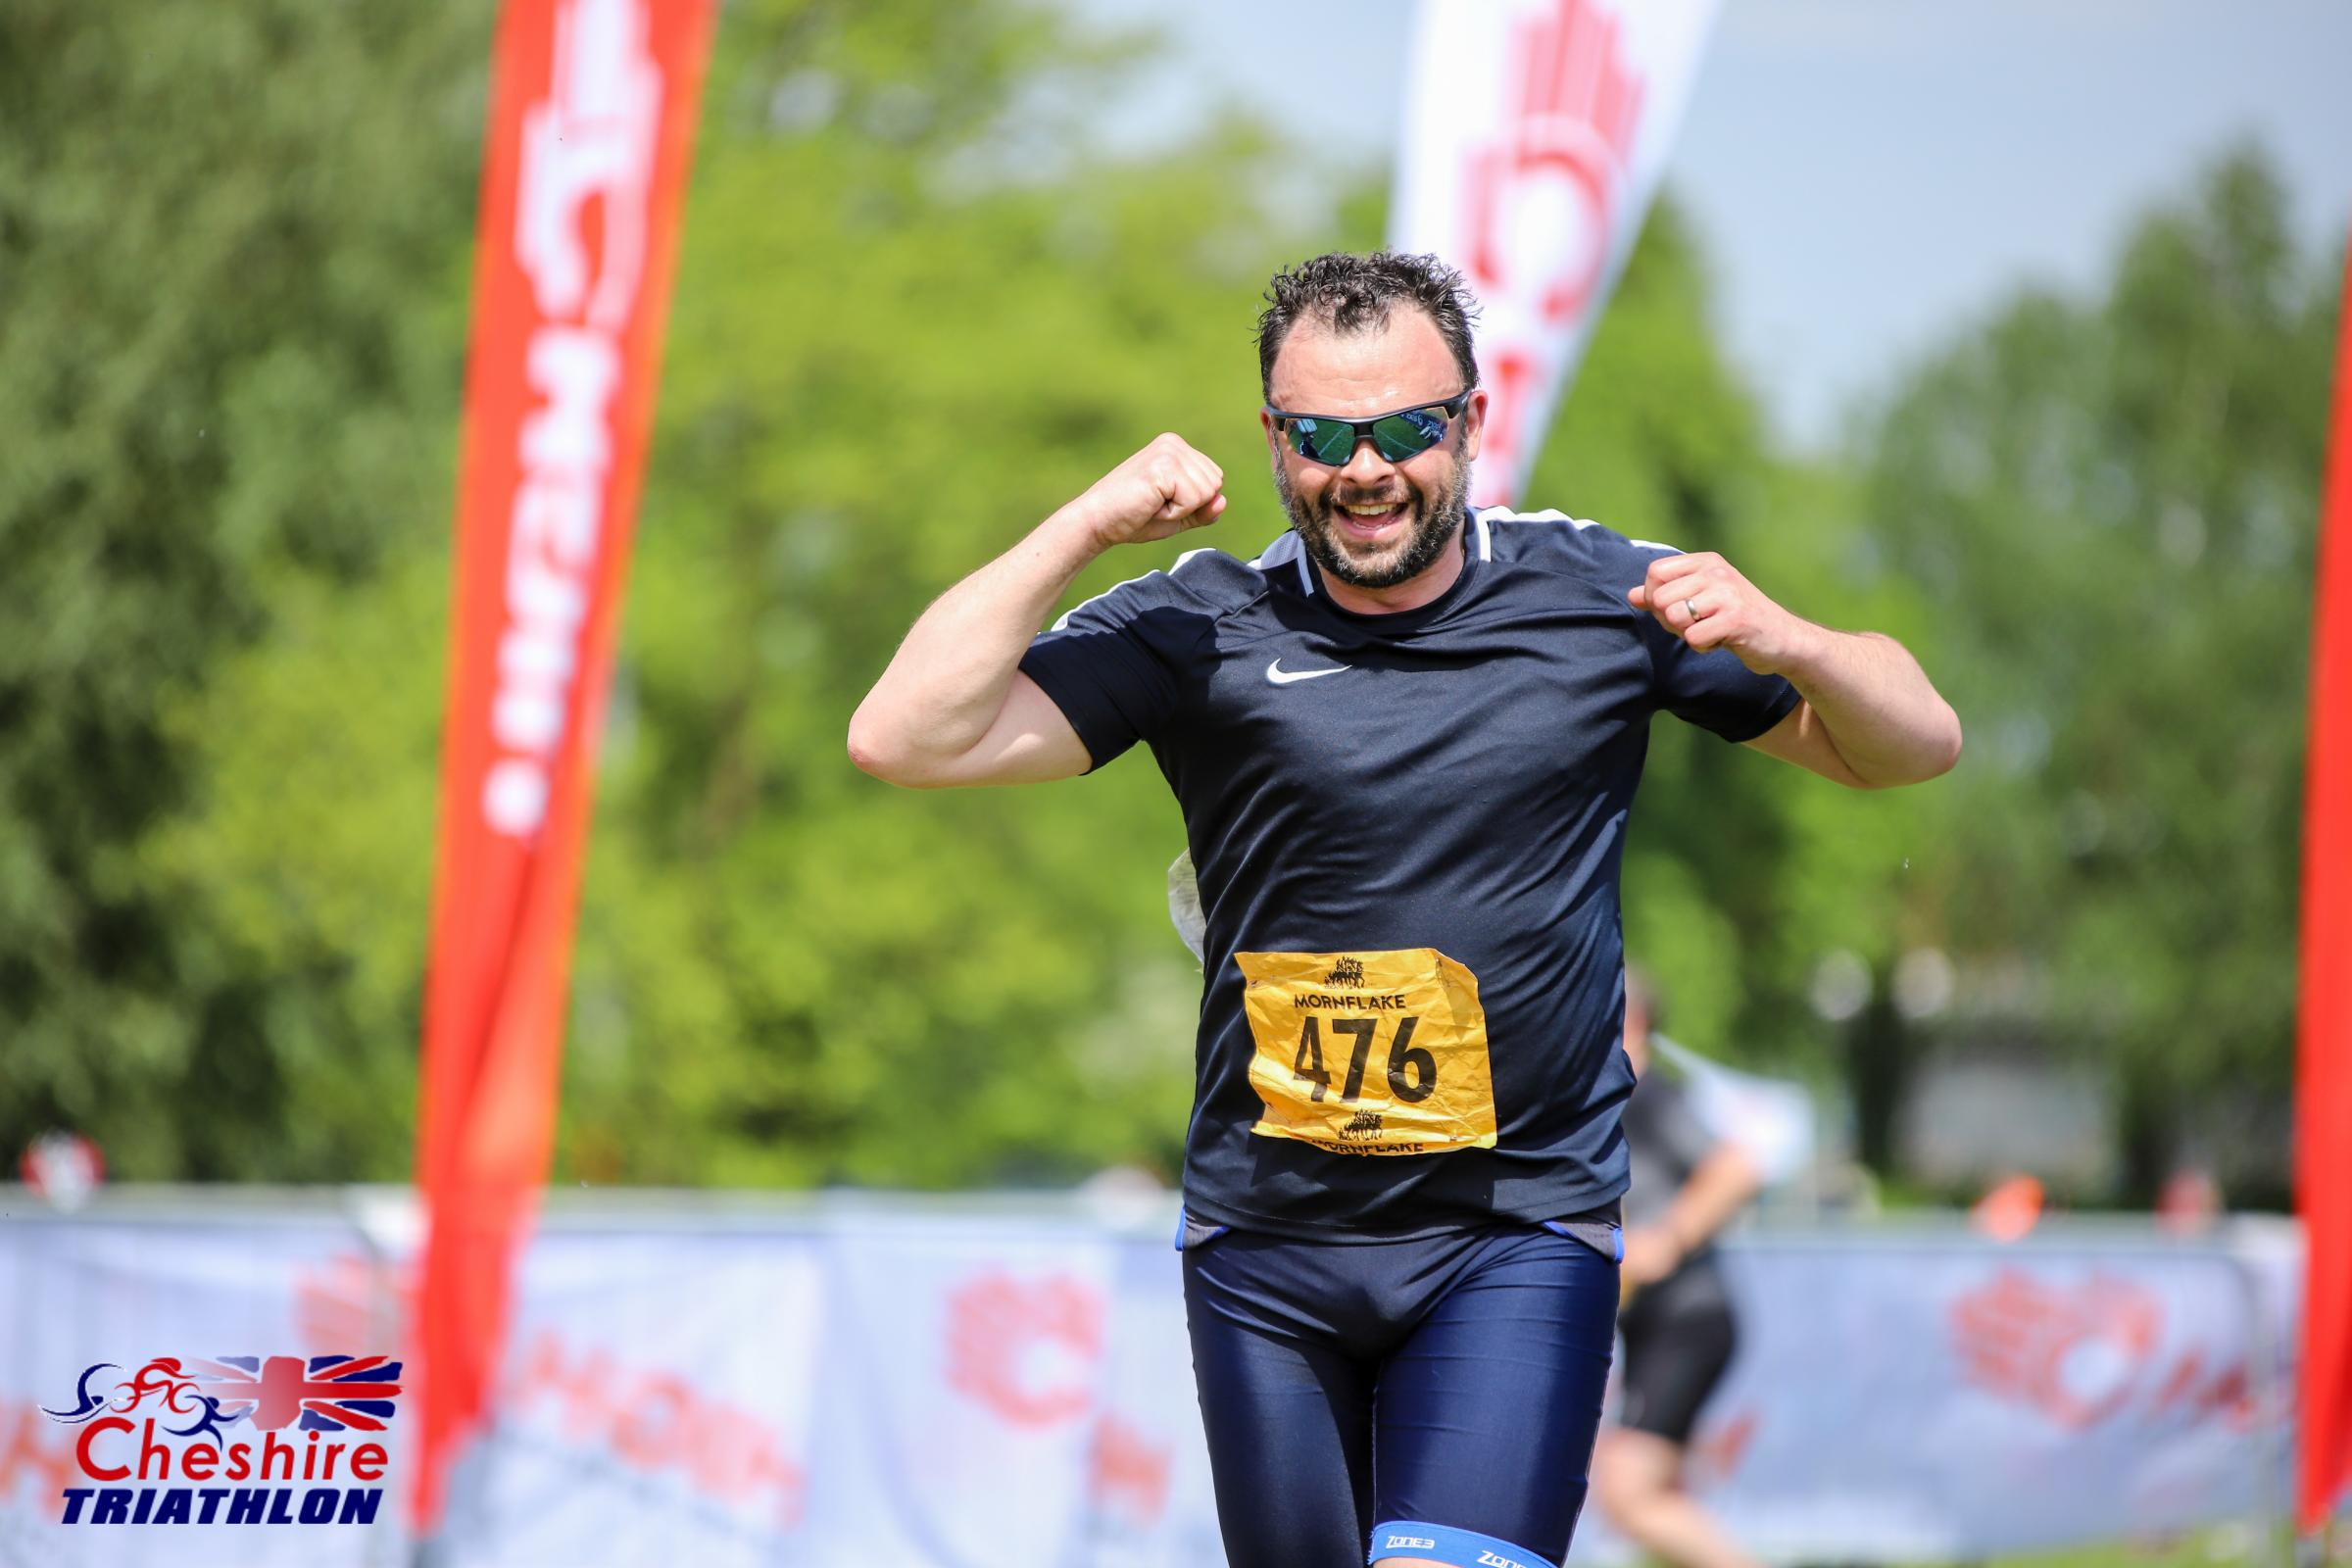 Cransley head teacher Richard Pollock after completing the triathlon